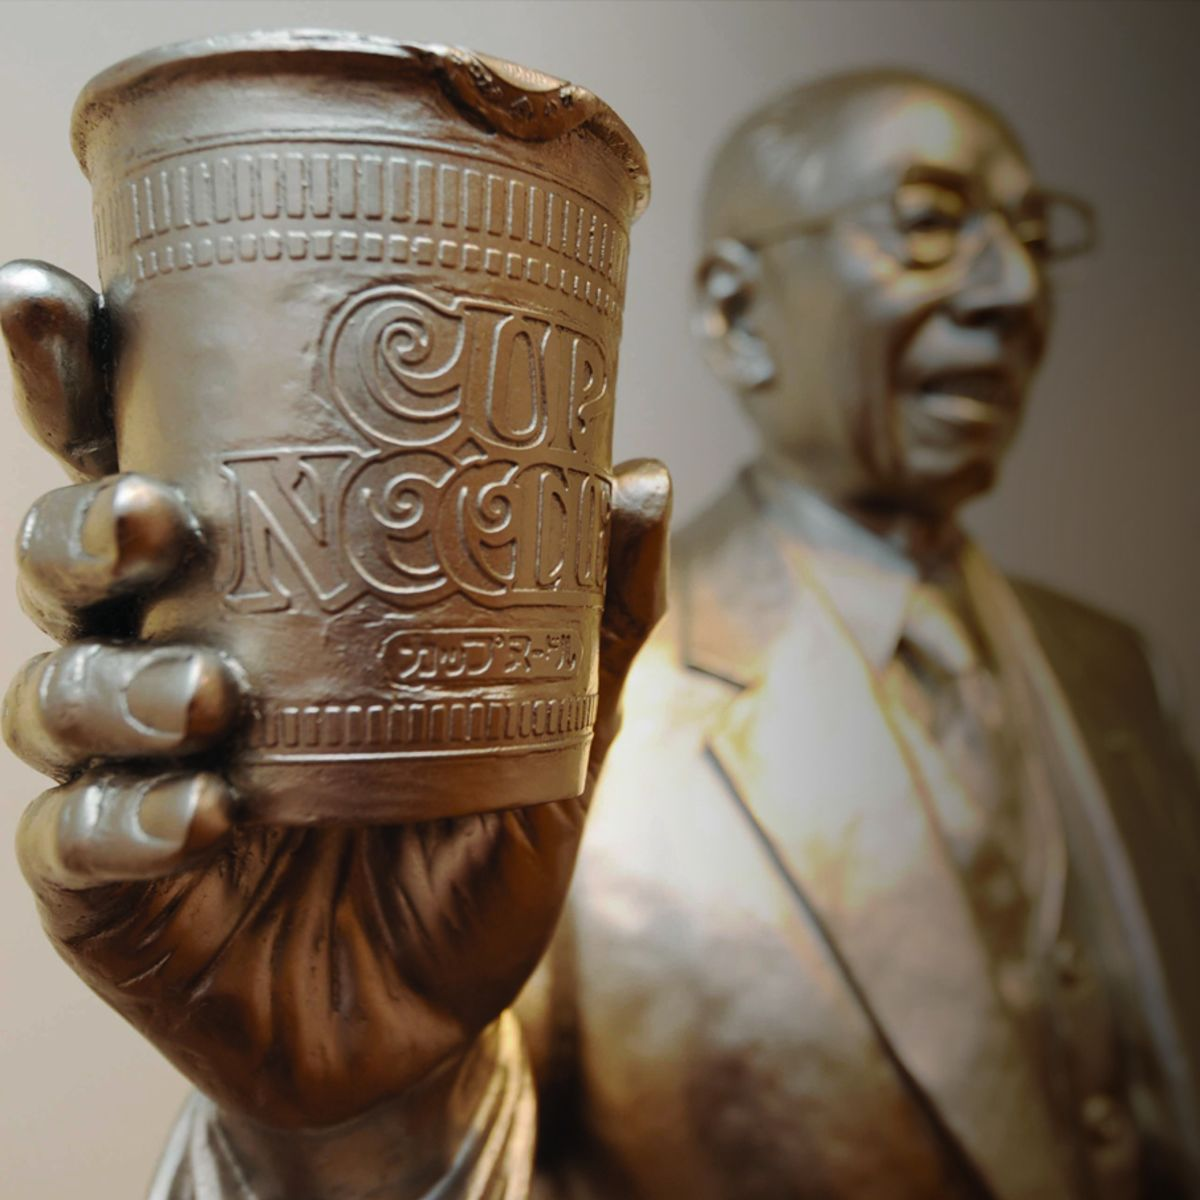 Silver Statue of Momofuku Ando, Godfather of instant noodles and cup noodles, from Cup noodle museum, Yokohama